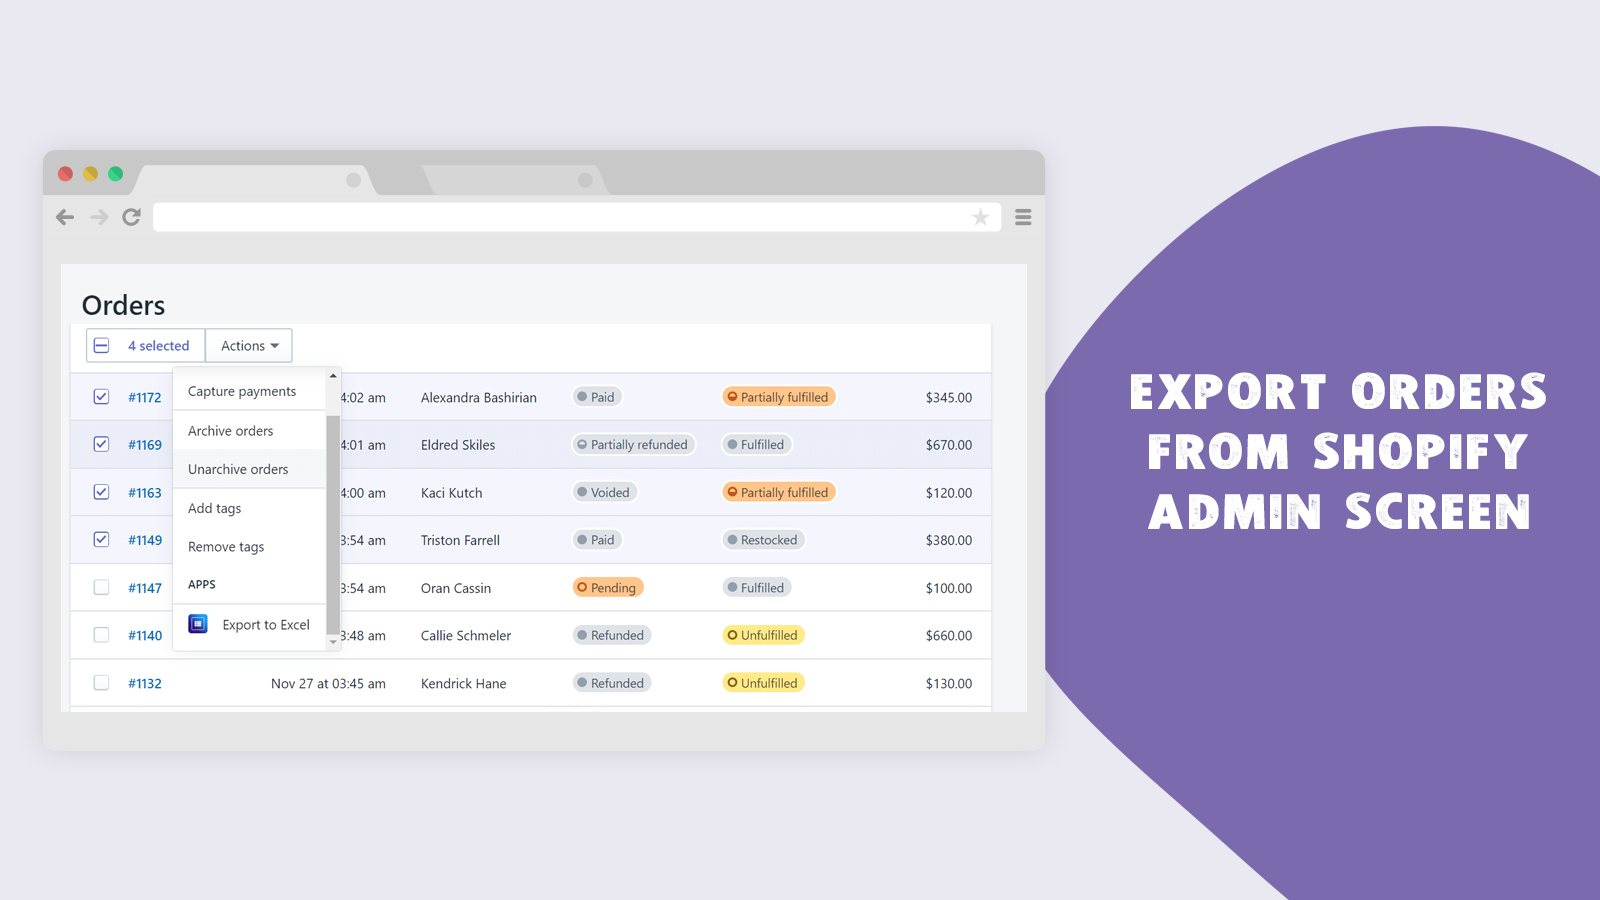 Export orders from Shopify Admin Screen